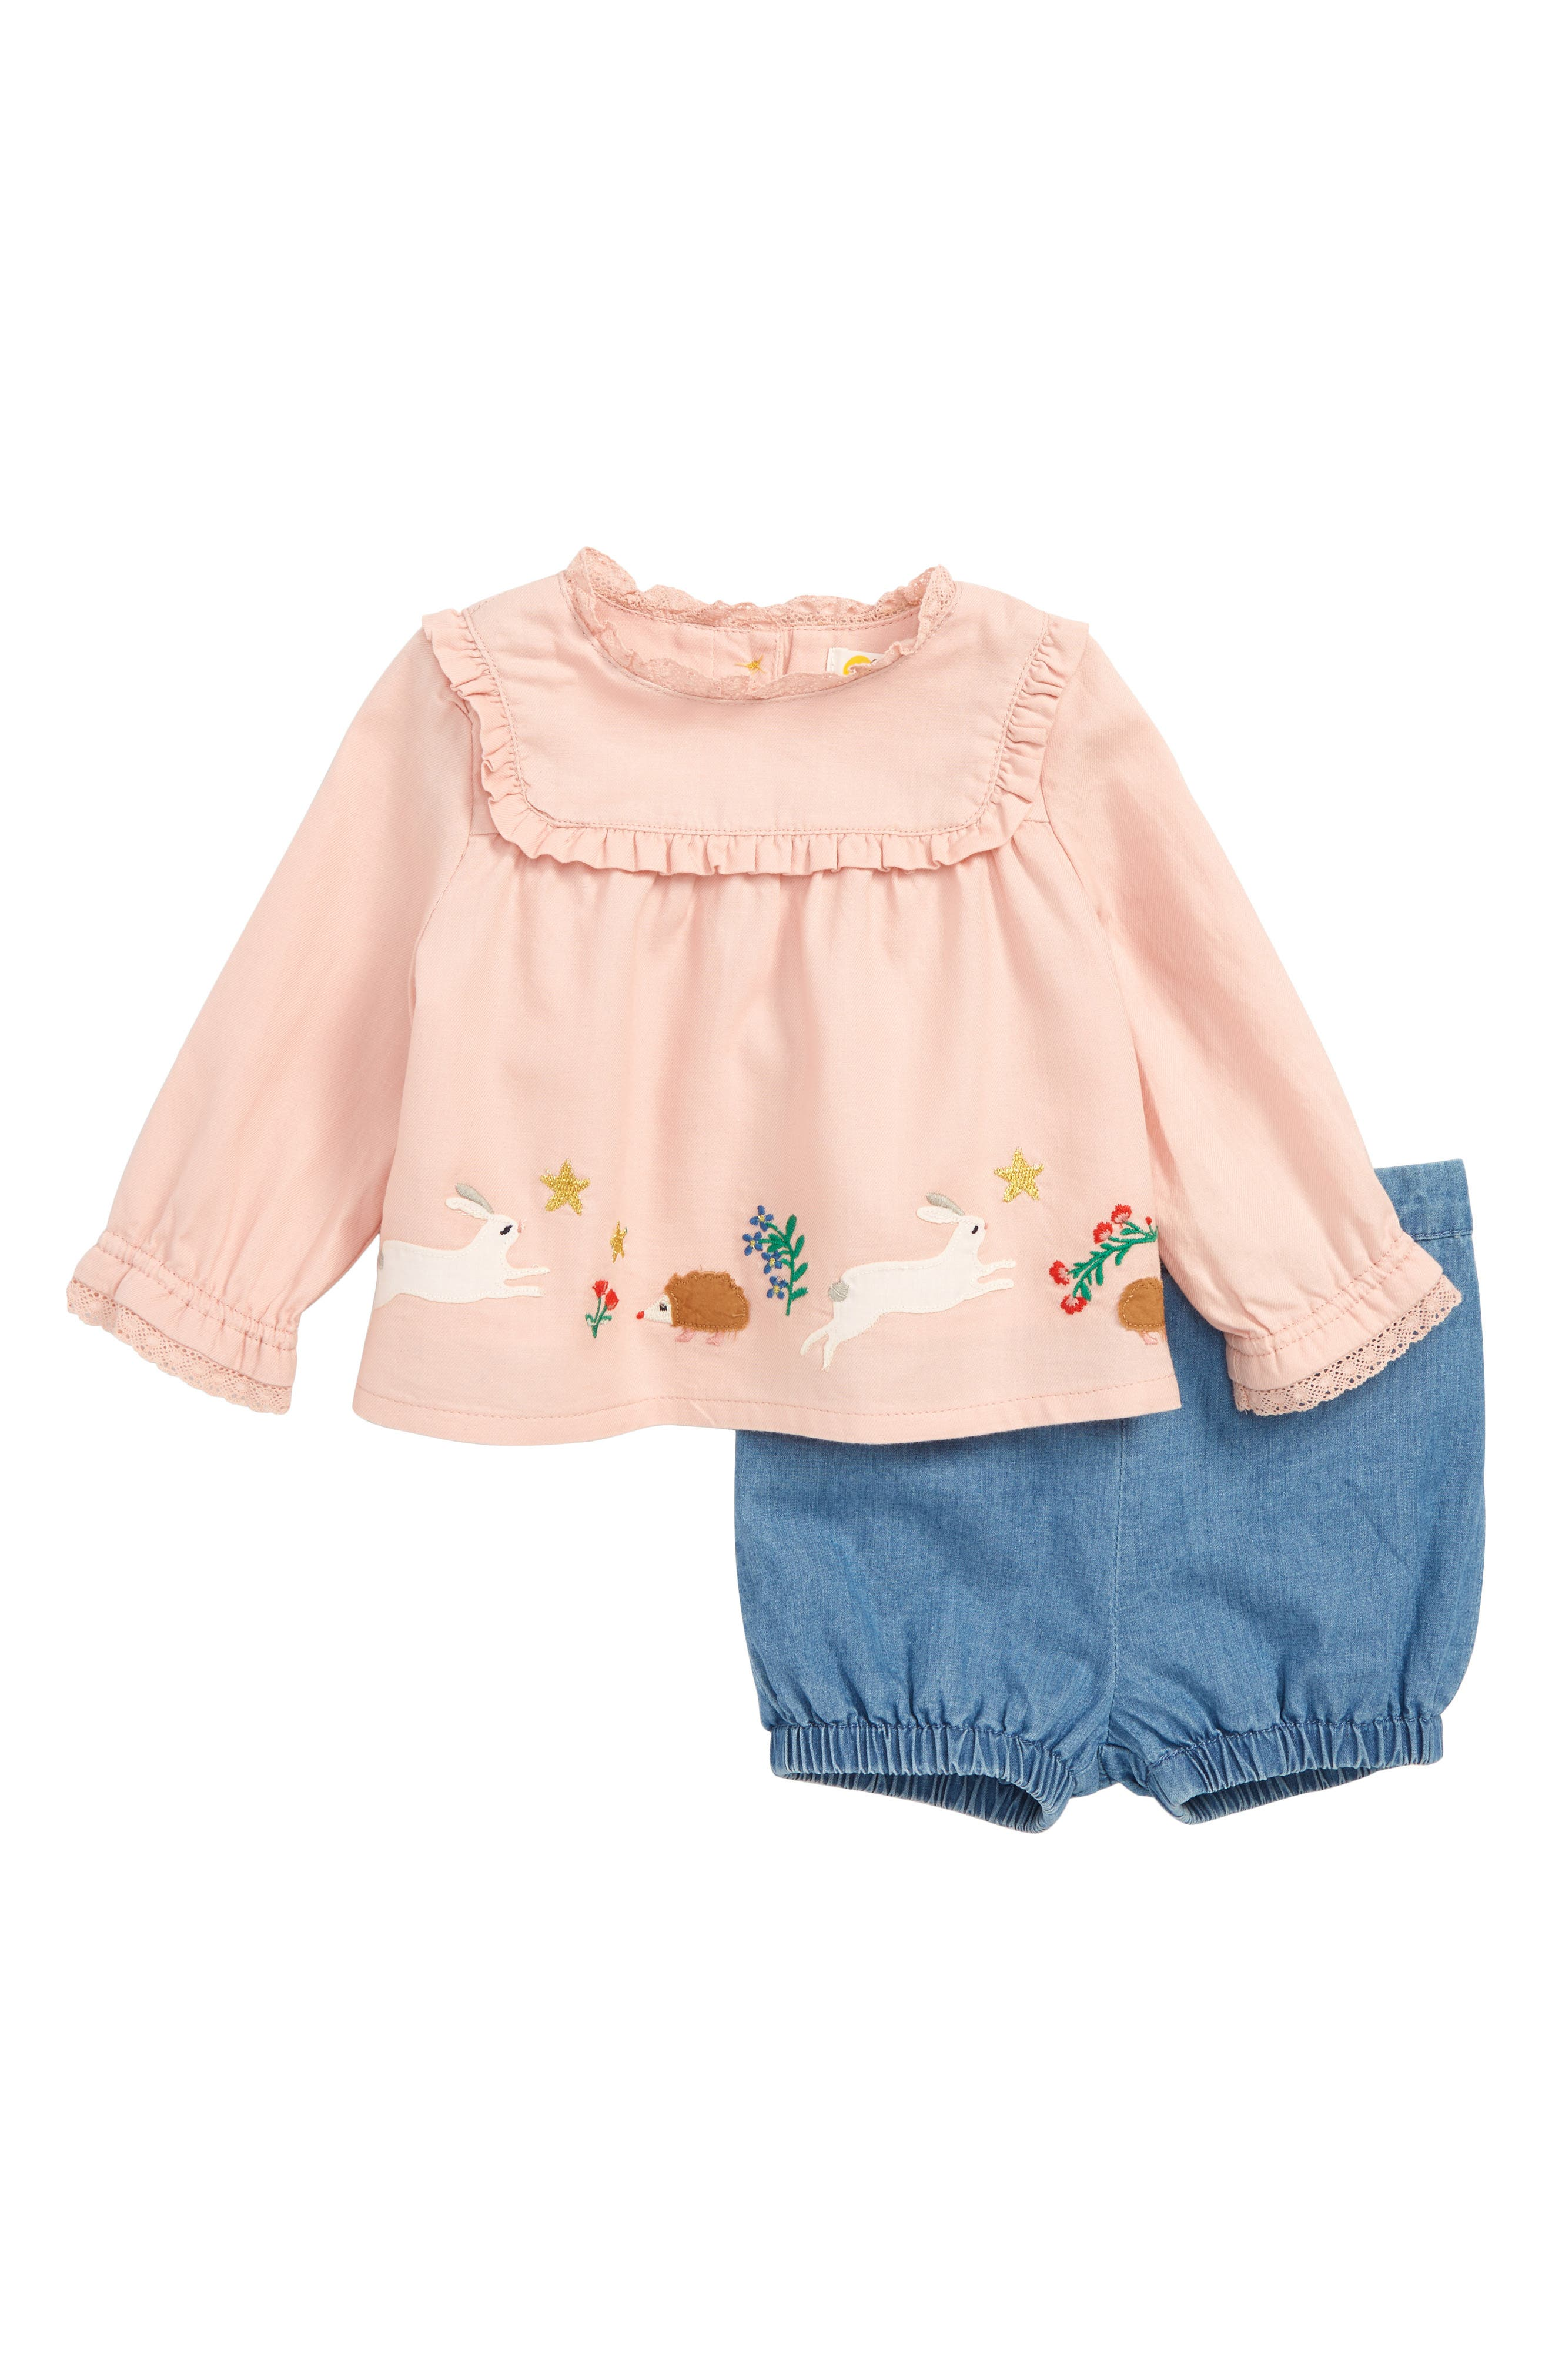 Provence Embroidered Top & Shorts Set,                         Main,                         color, 684